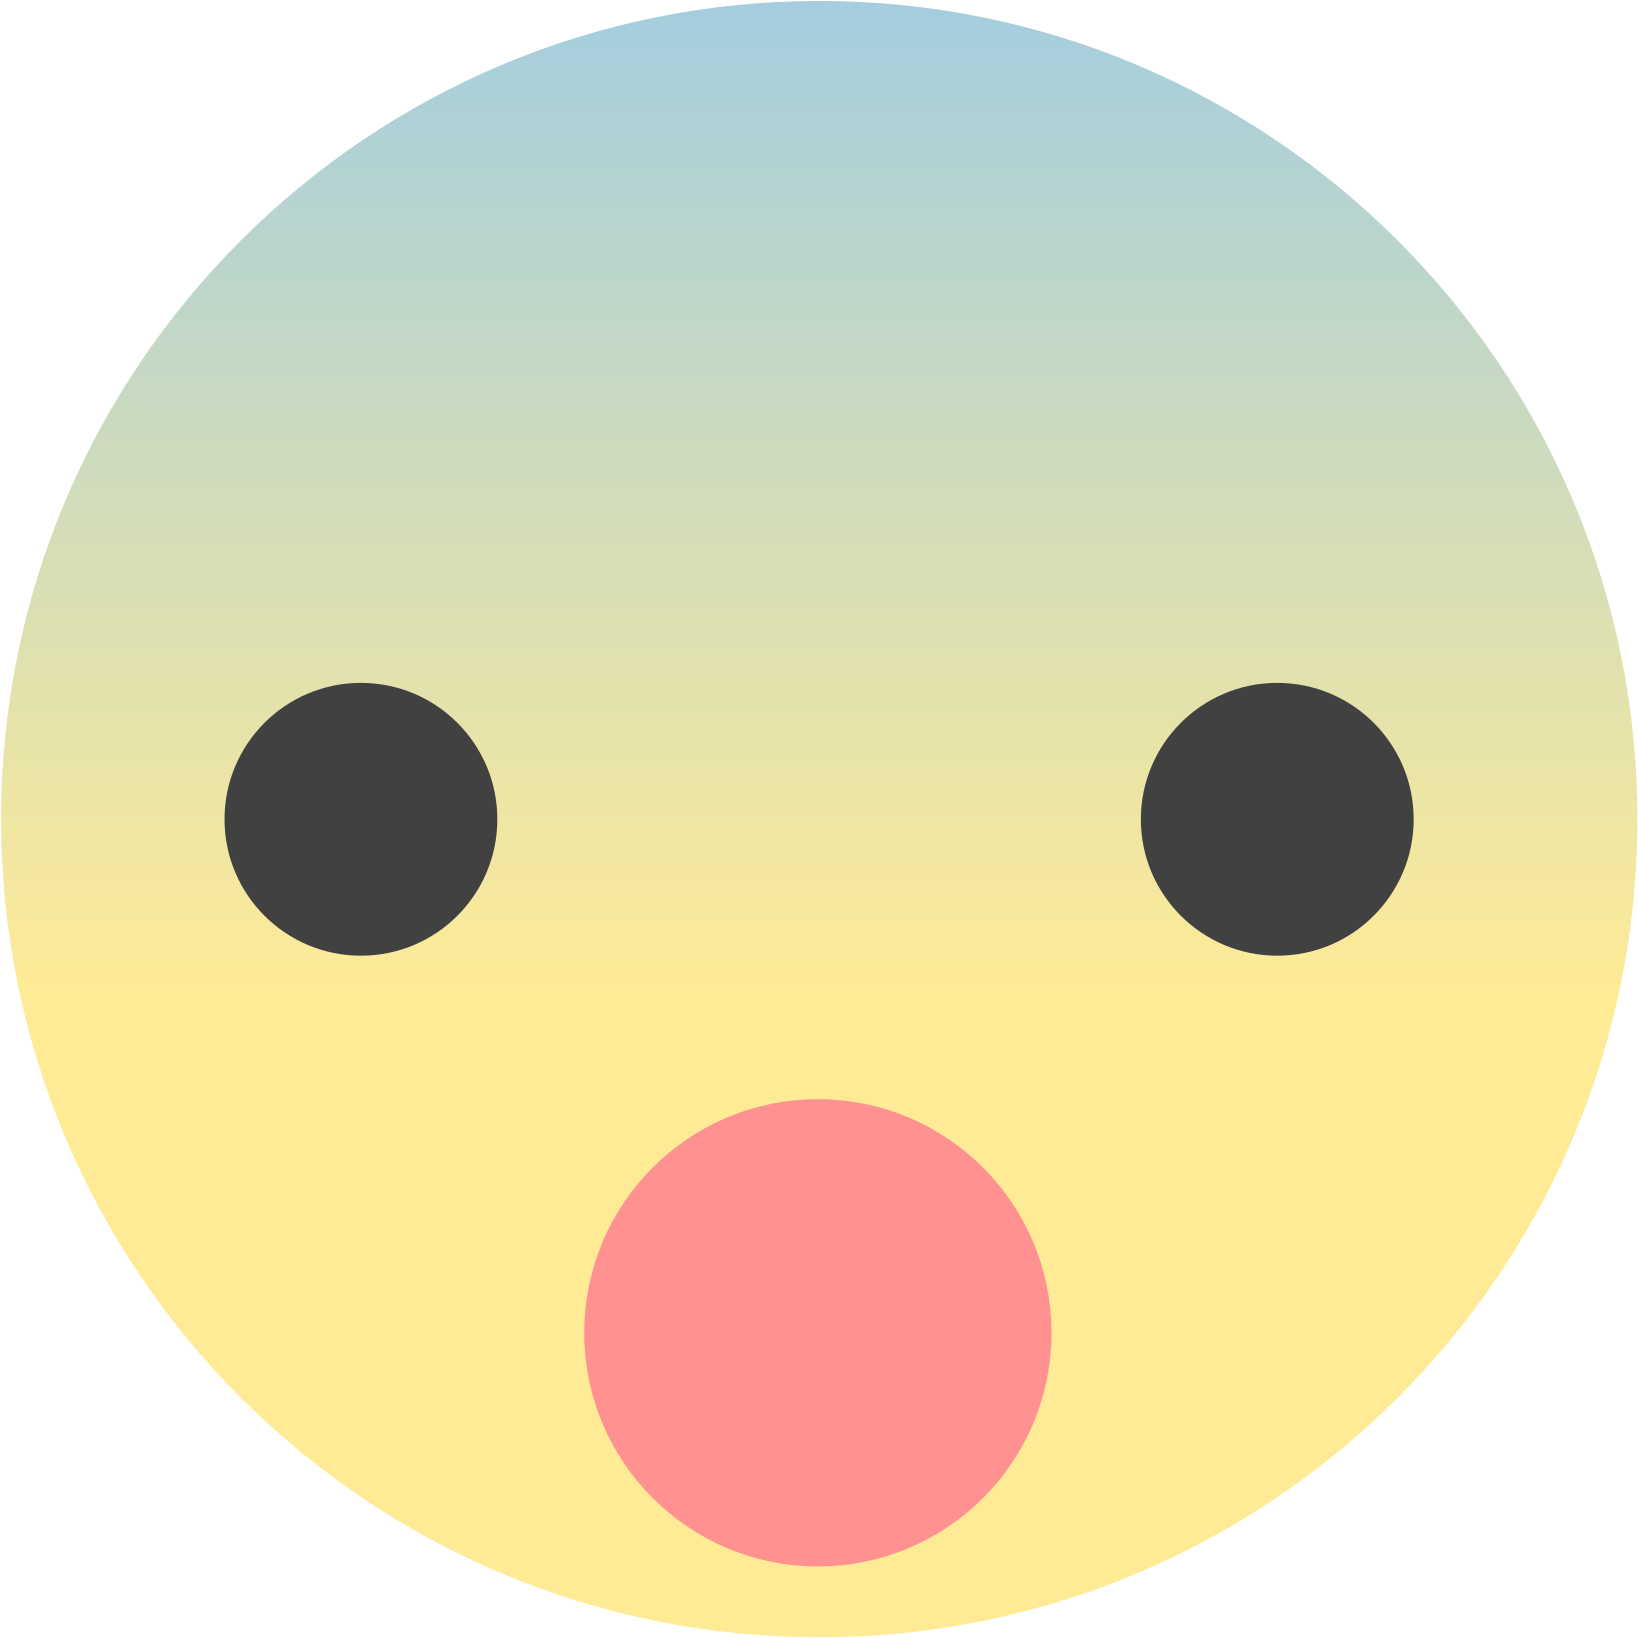 Surprise clipart surprised face. Hd circle transparent png